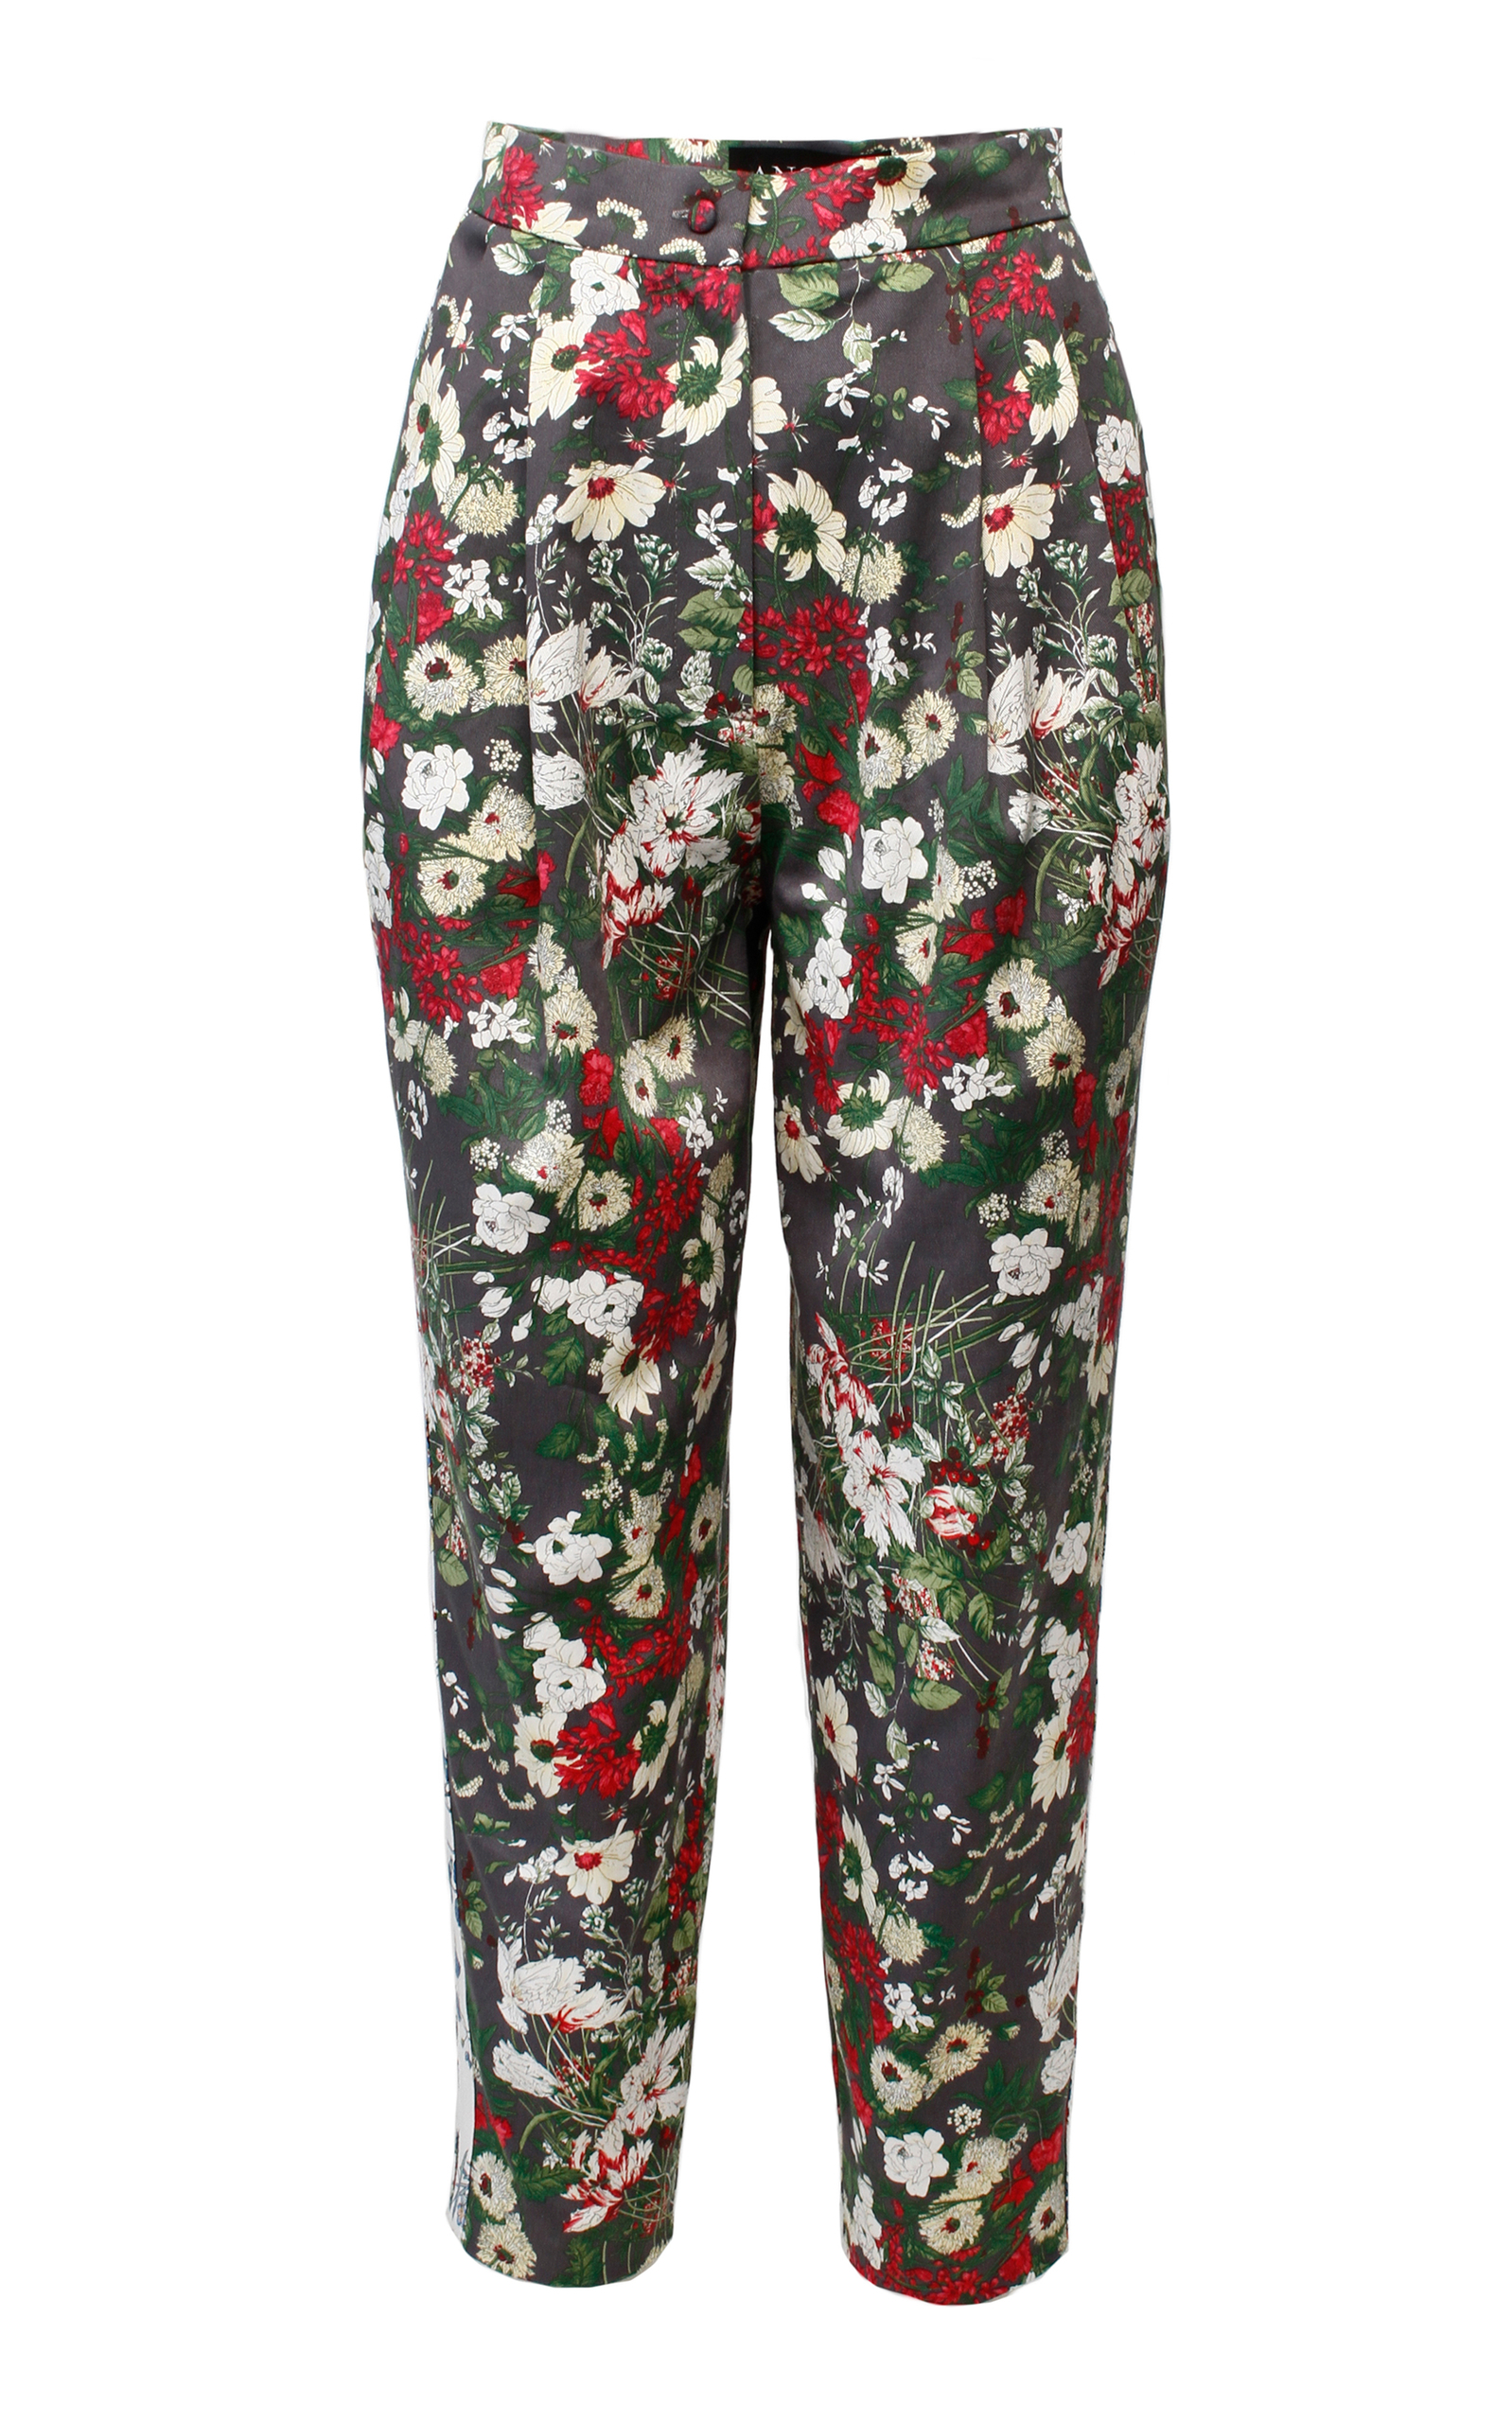 ANOUKI Multicolor Flower Print Cropped Pants in Floral